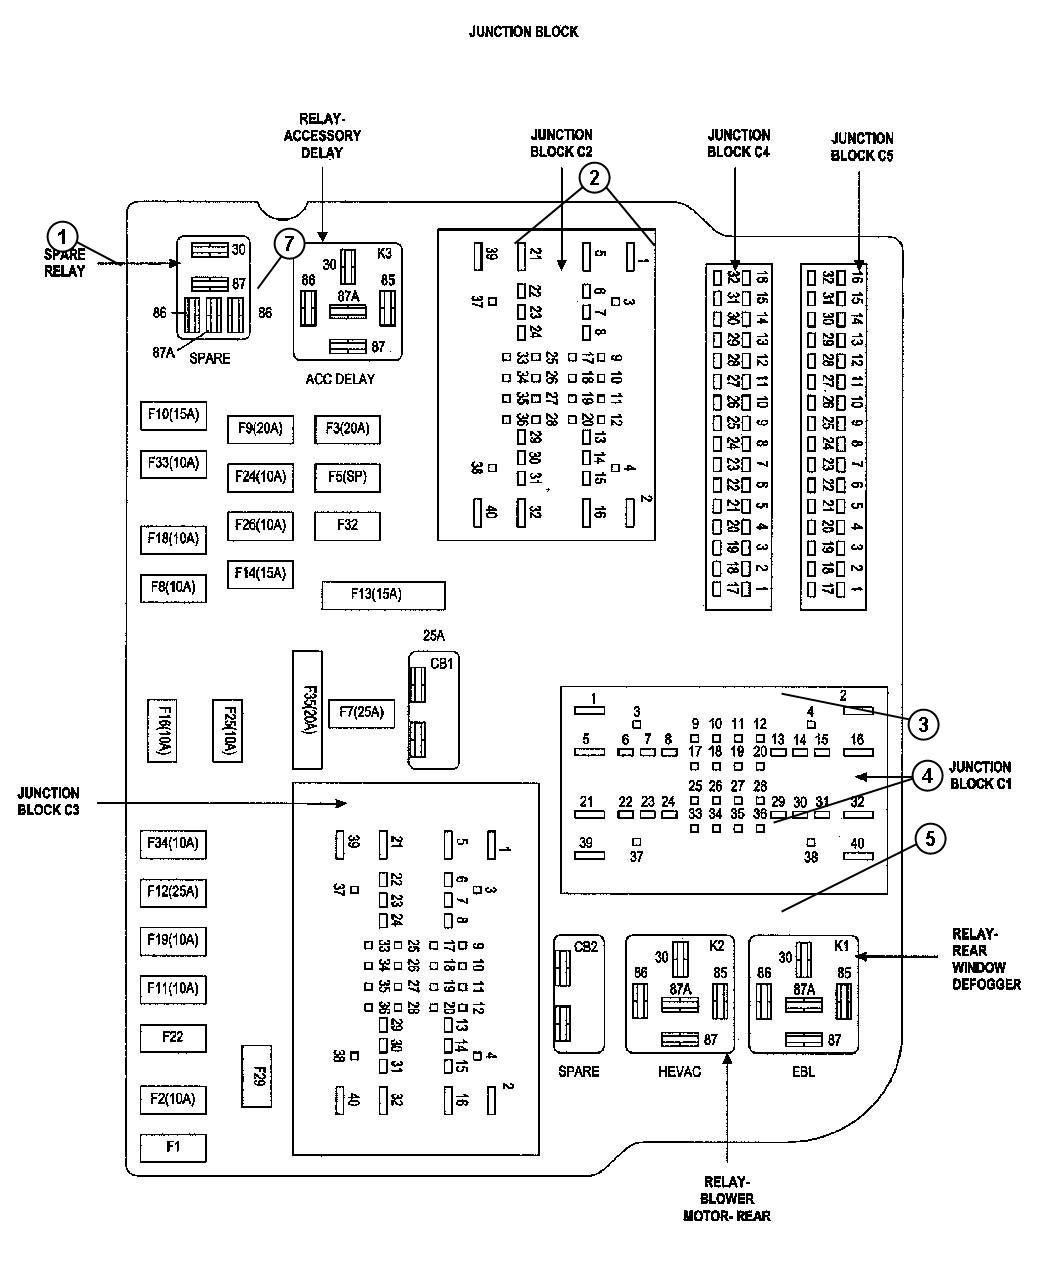 2007 Chrysler Aspen Fuse Box : 28 Wiring Diagram Images